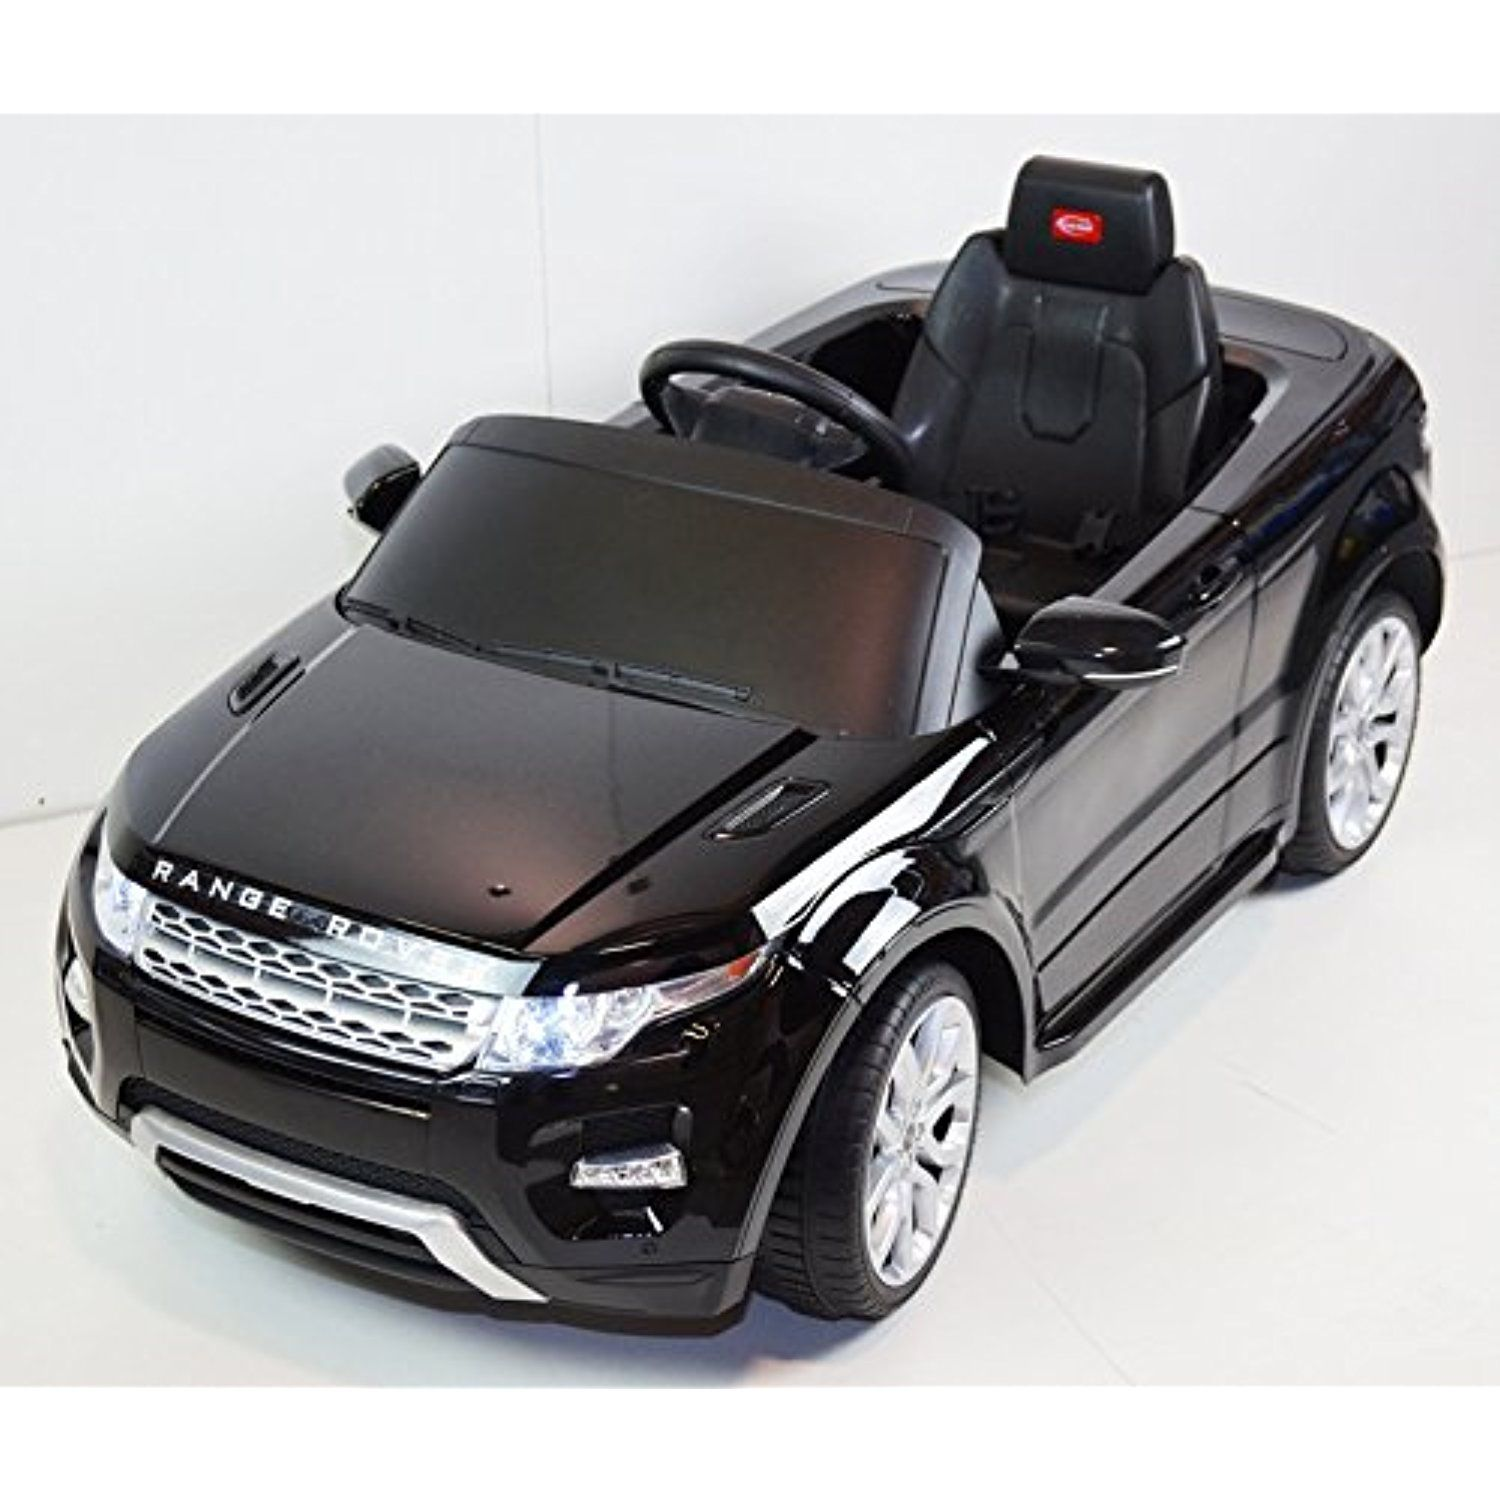 Range Rover Evoque Ride On Toy Car With Remote Control